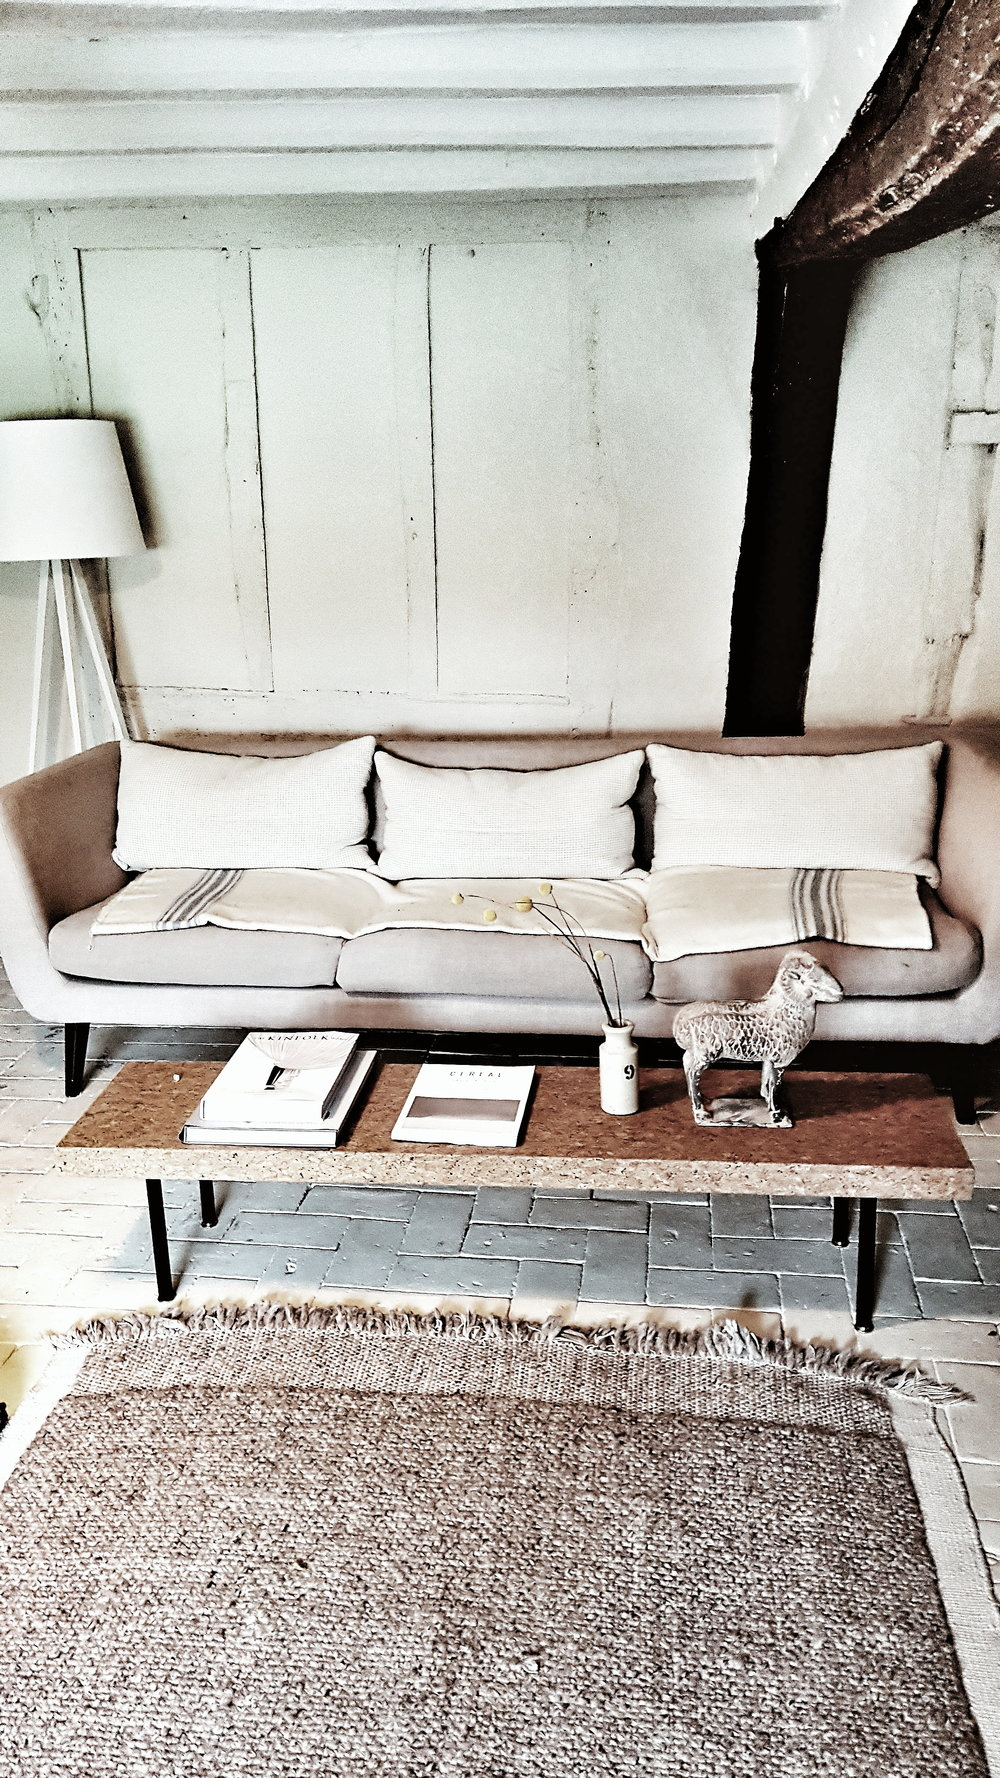 The living room at the cottage was painted in neutral colours with texture and warmth added through touches such as the jute rug and woolen cushions and blankets